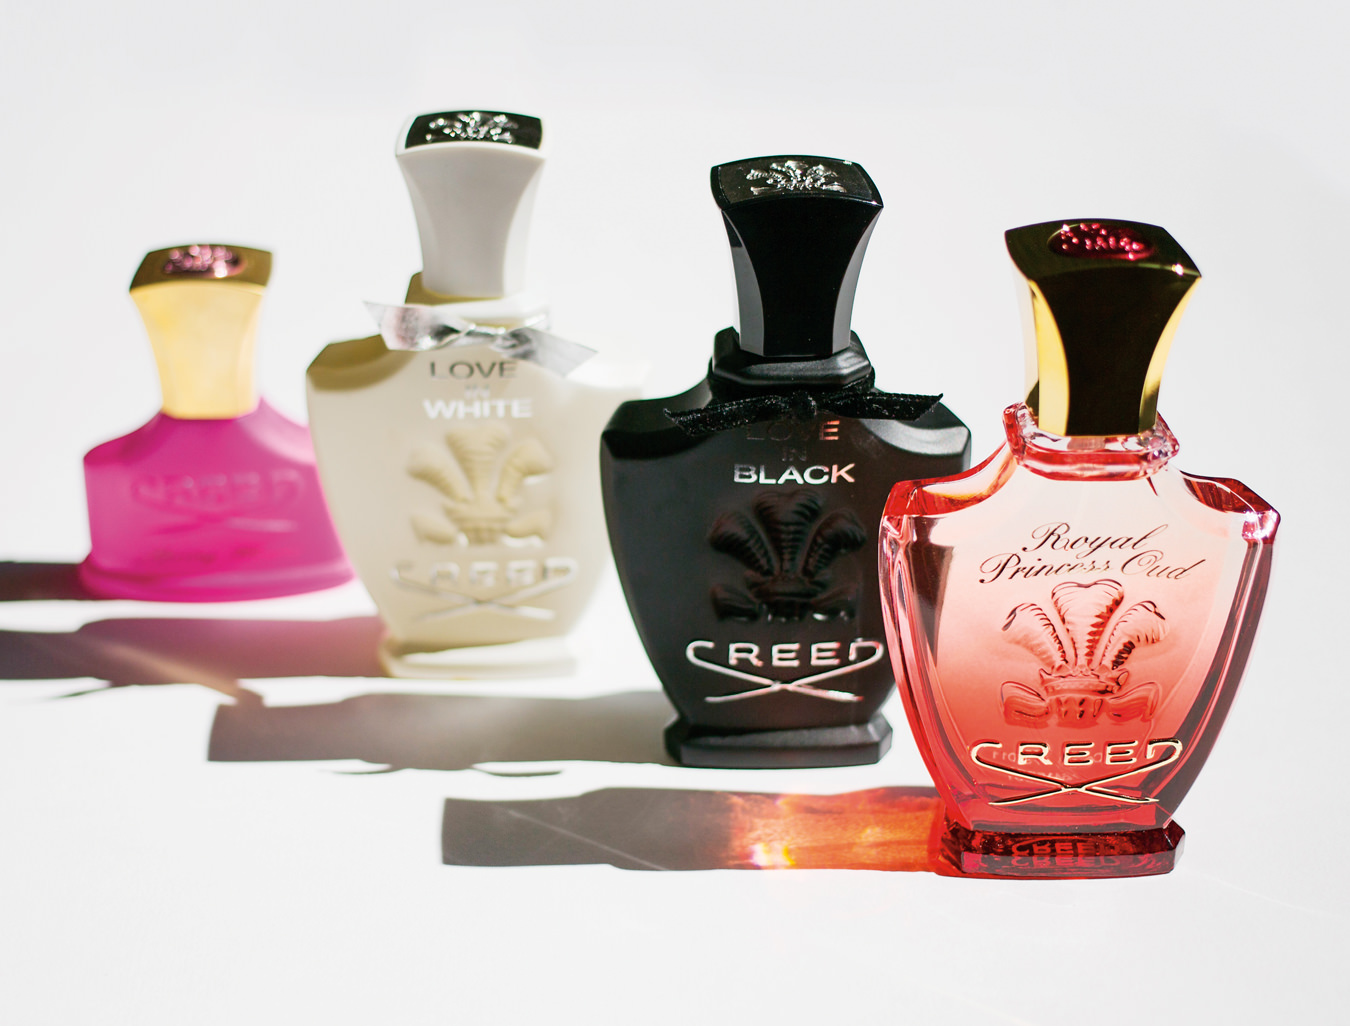 NUVO winter 2015: Perfumers Creed, FYI Beauty